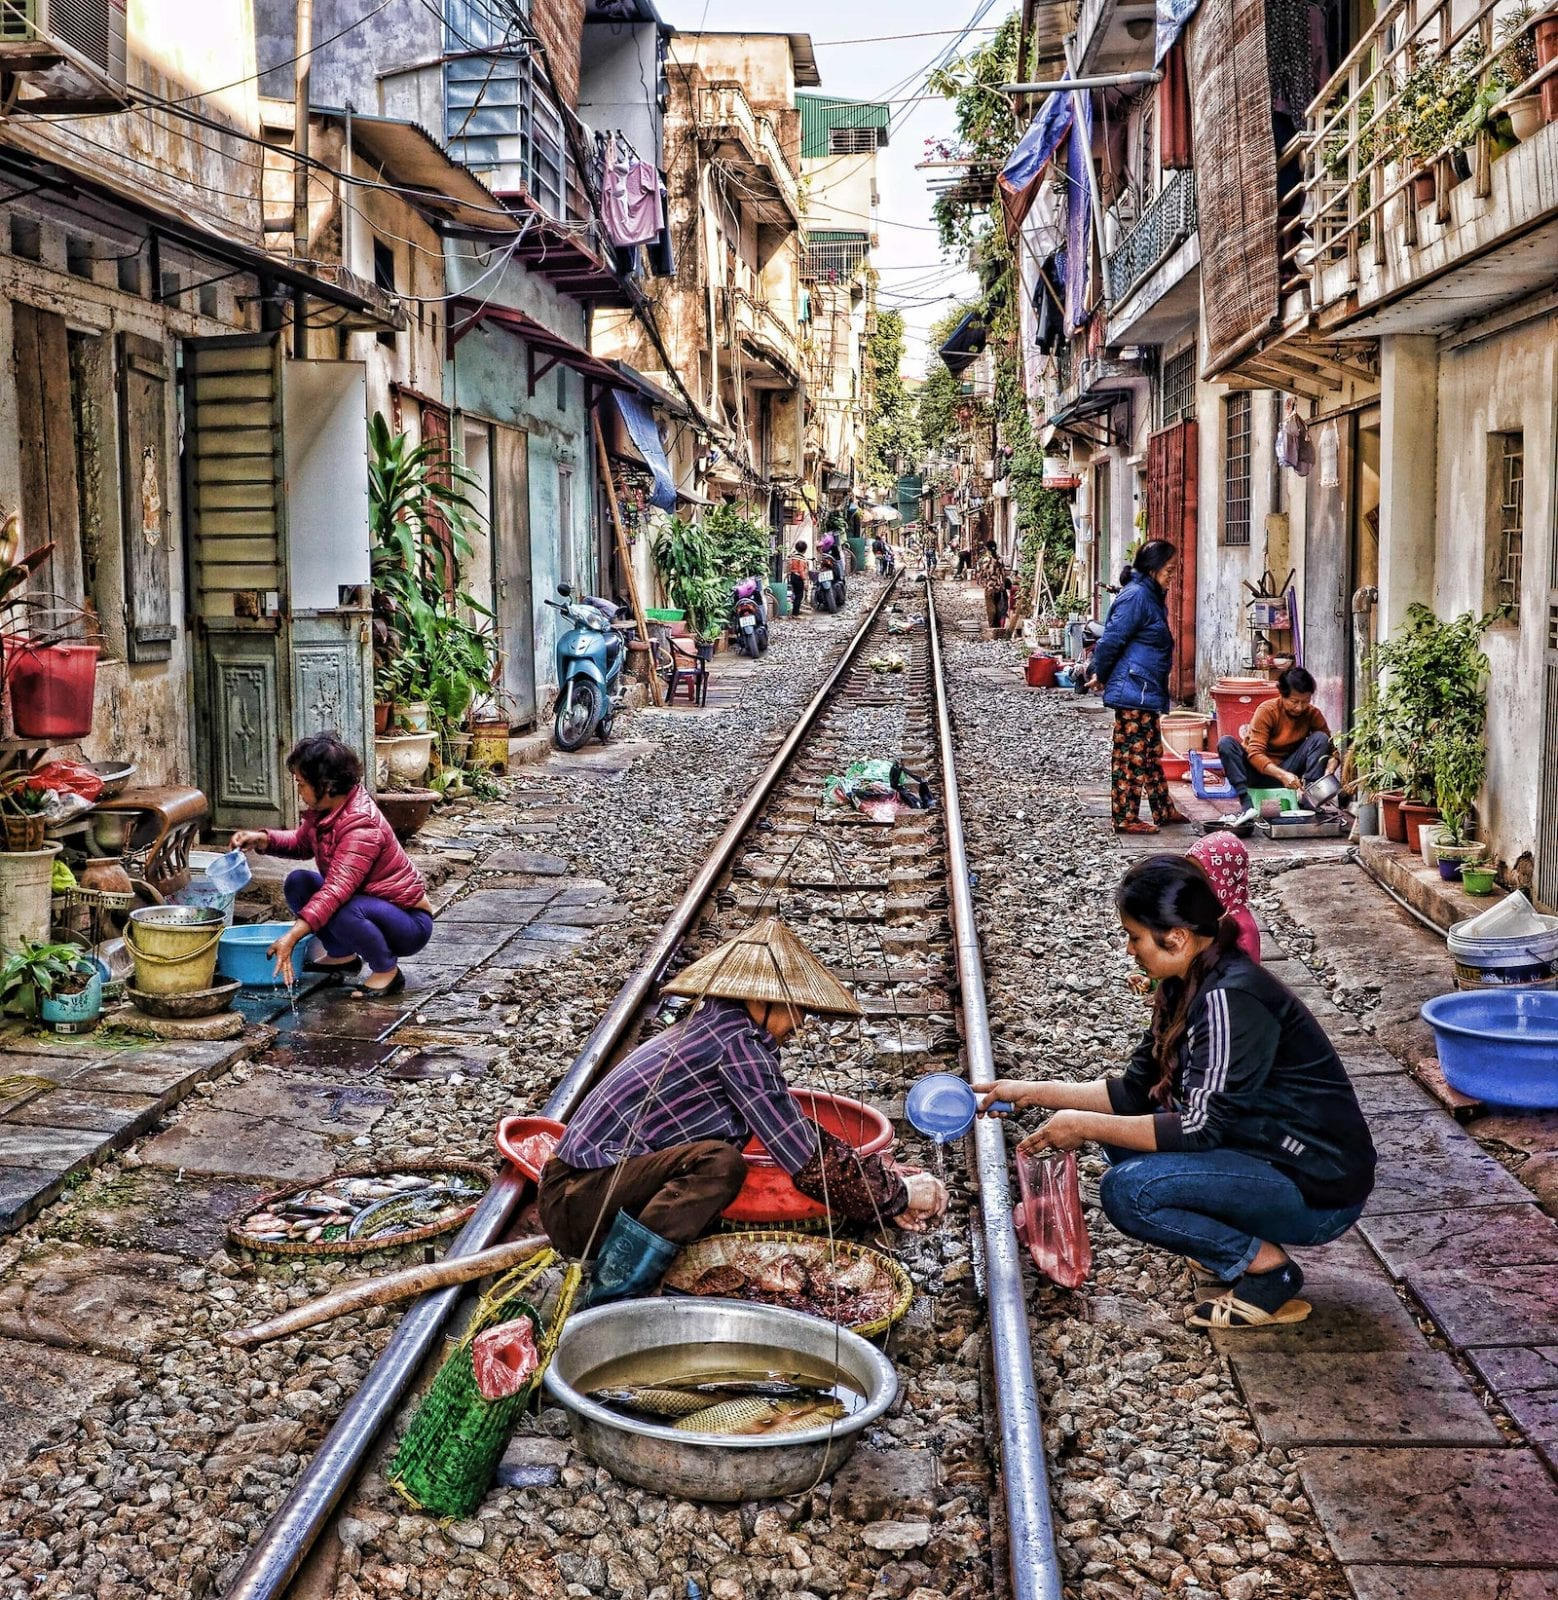 Train street in December, Ha Noi